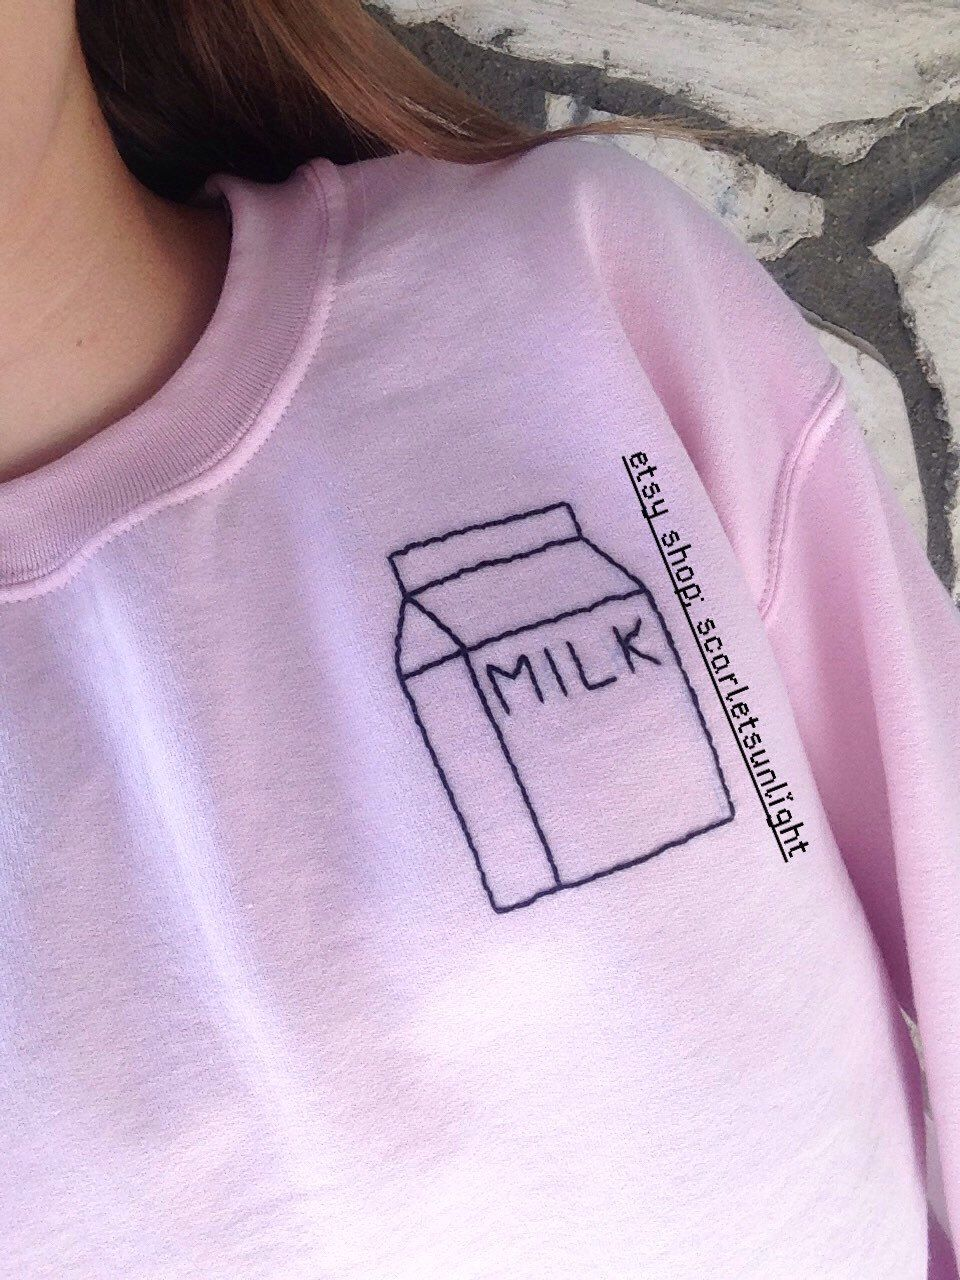 MILK CARTON Tumblr Aesthetic Embroidered Pink OR Blue Crewneck ...